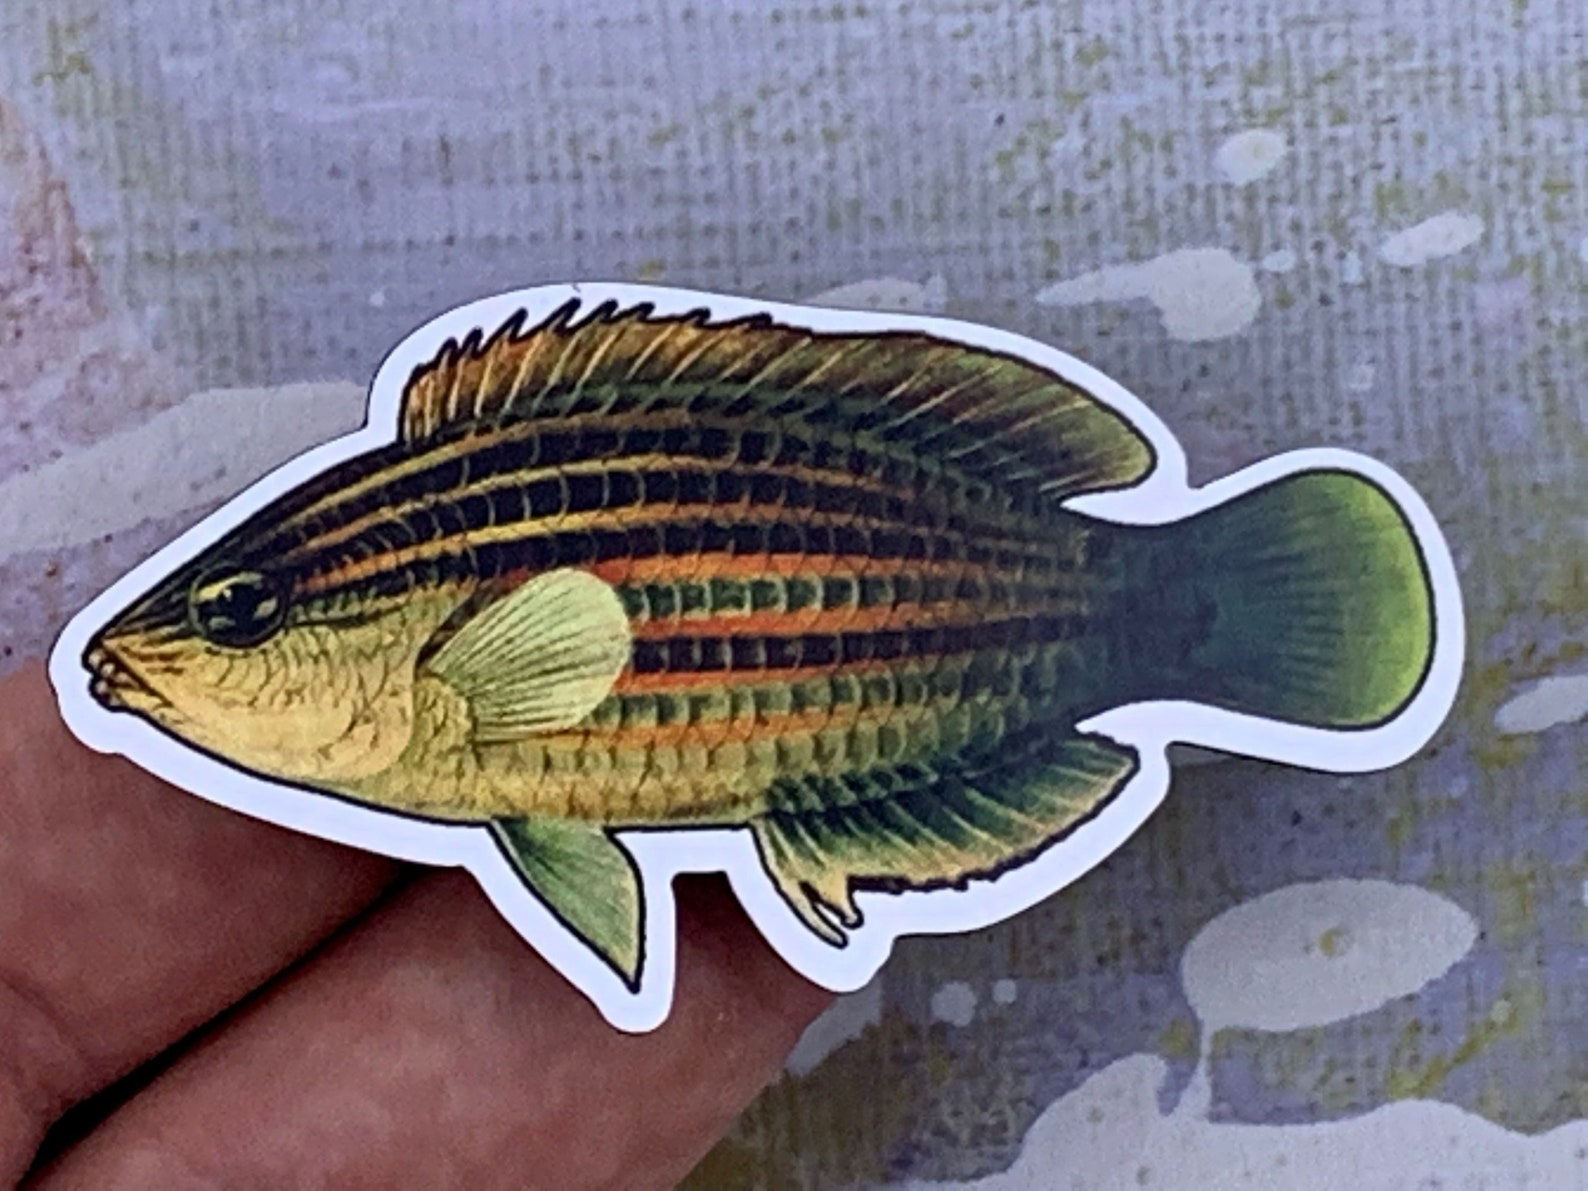 Photo of a six-line wrasse magnet in someone's hand